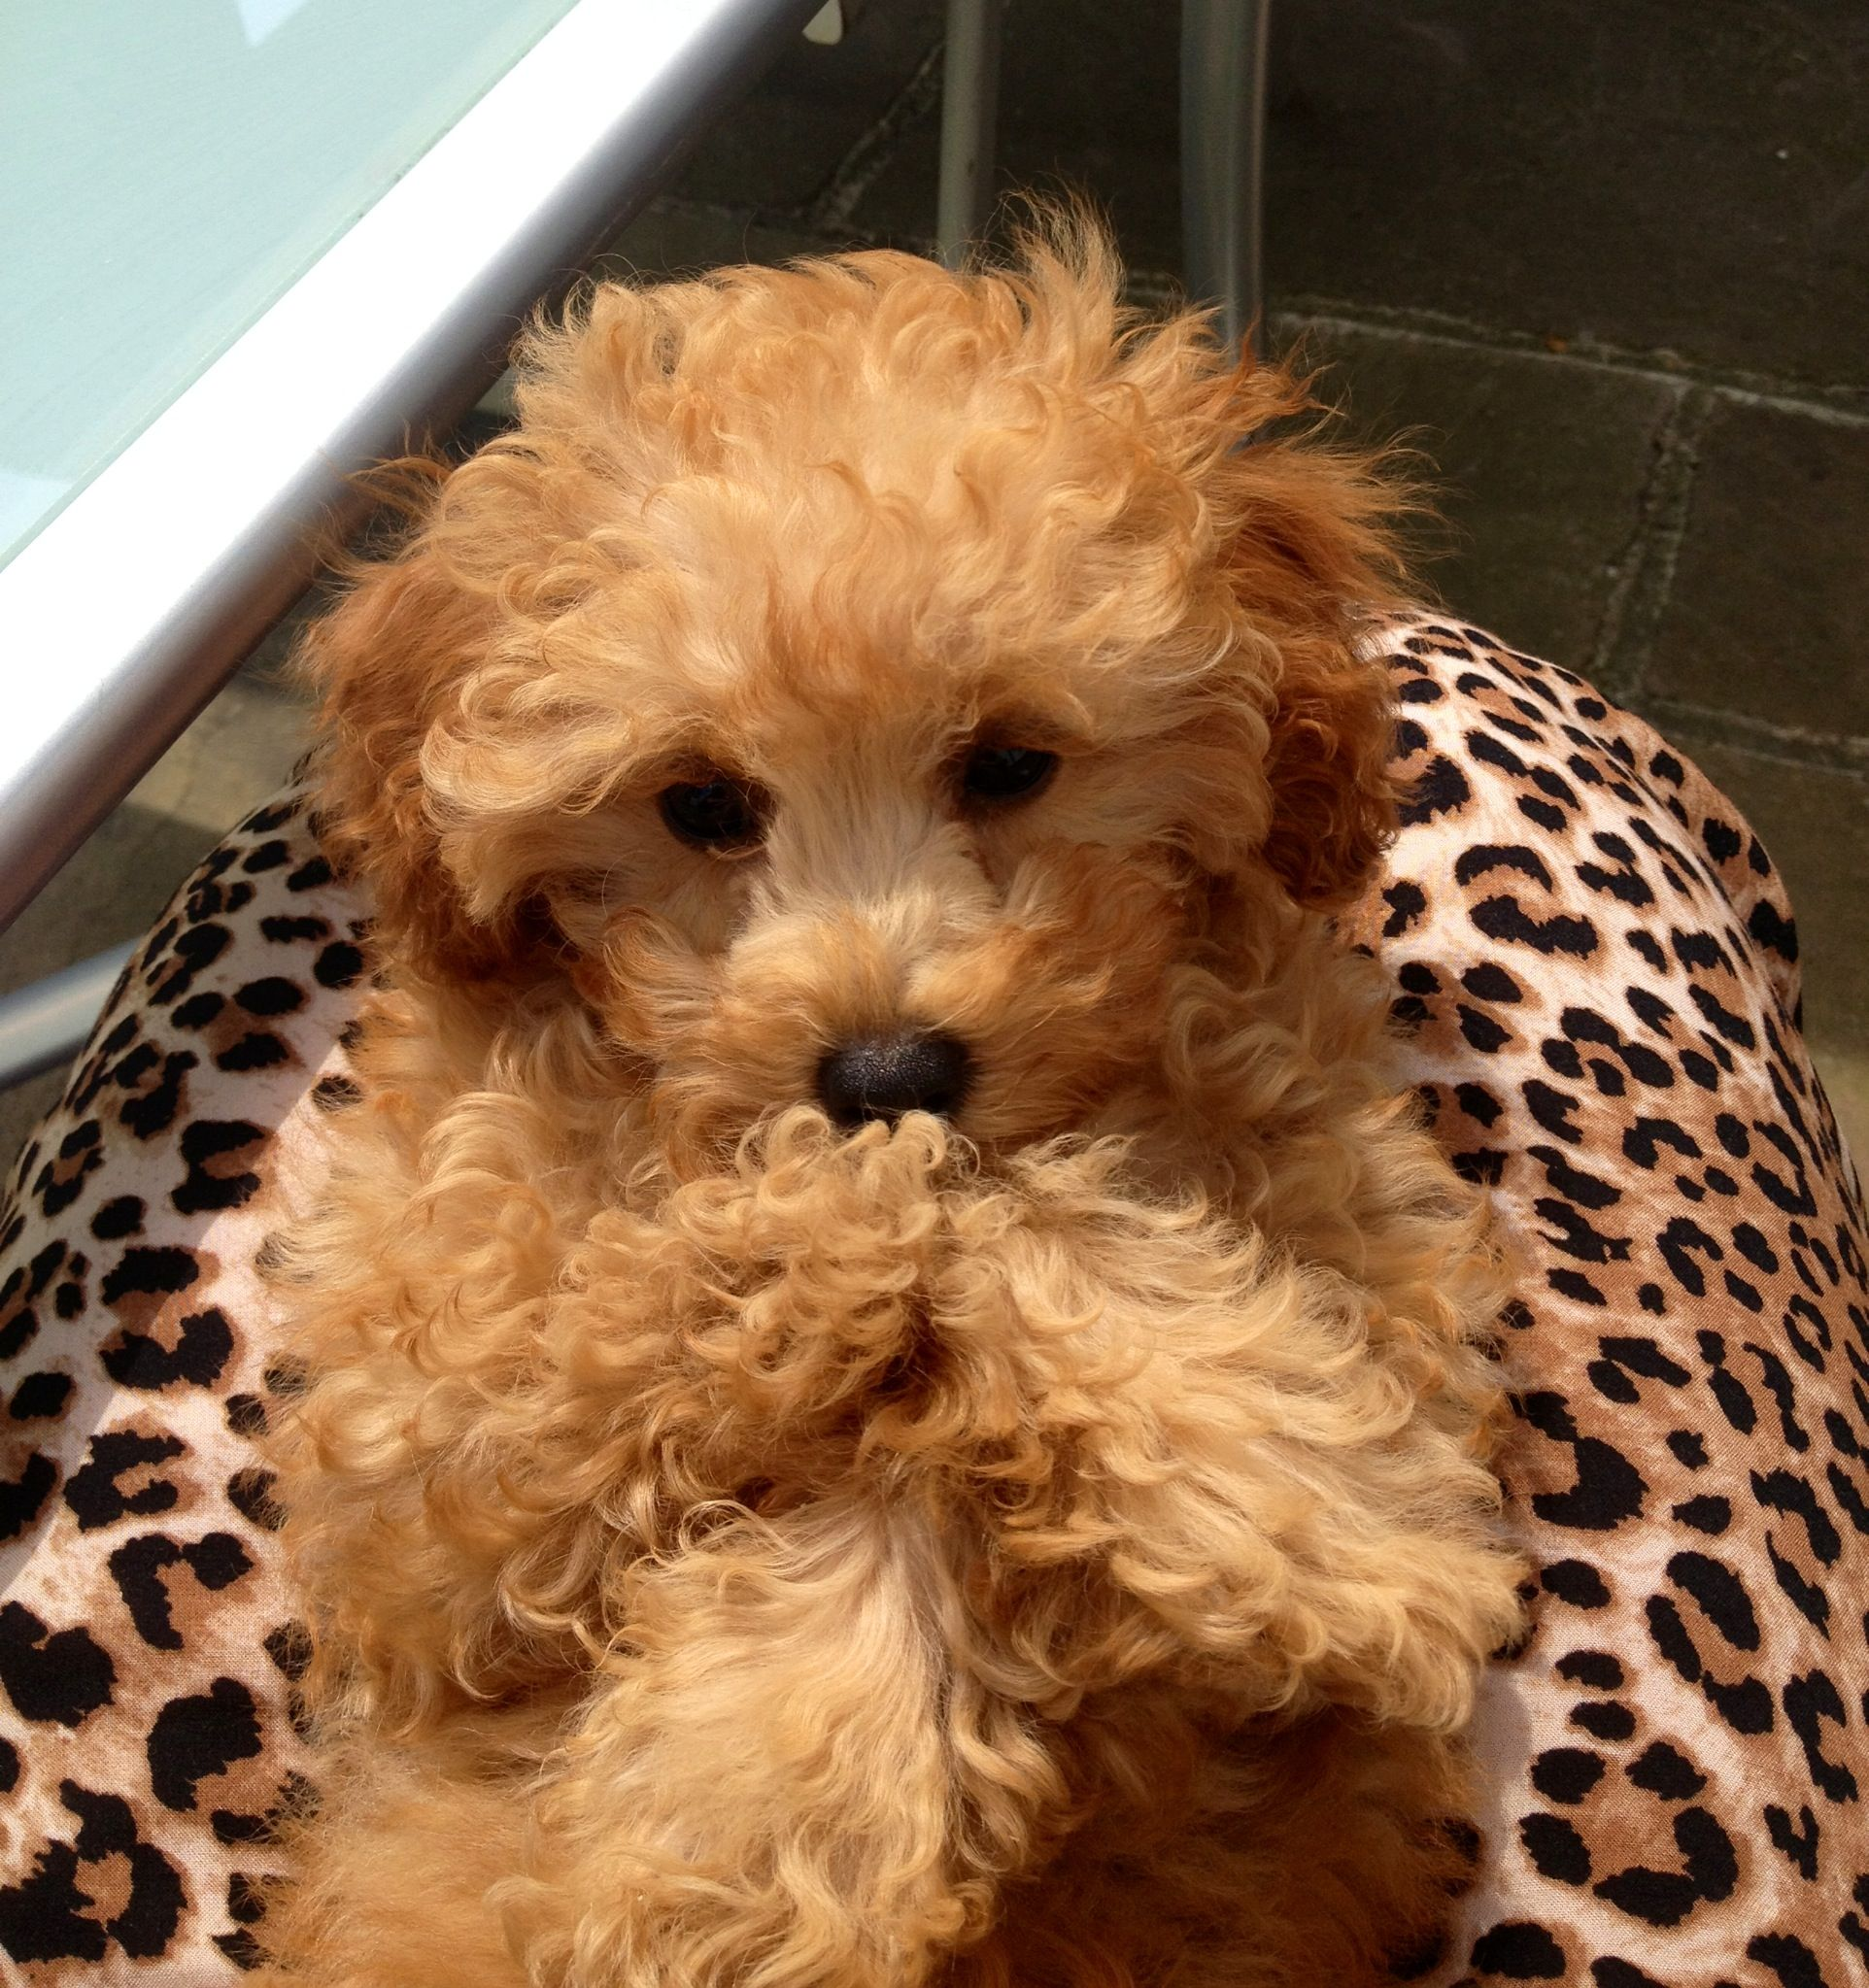 Apricot Toy a Poodle Puppy - Ellie at 12 weeks old